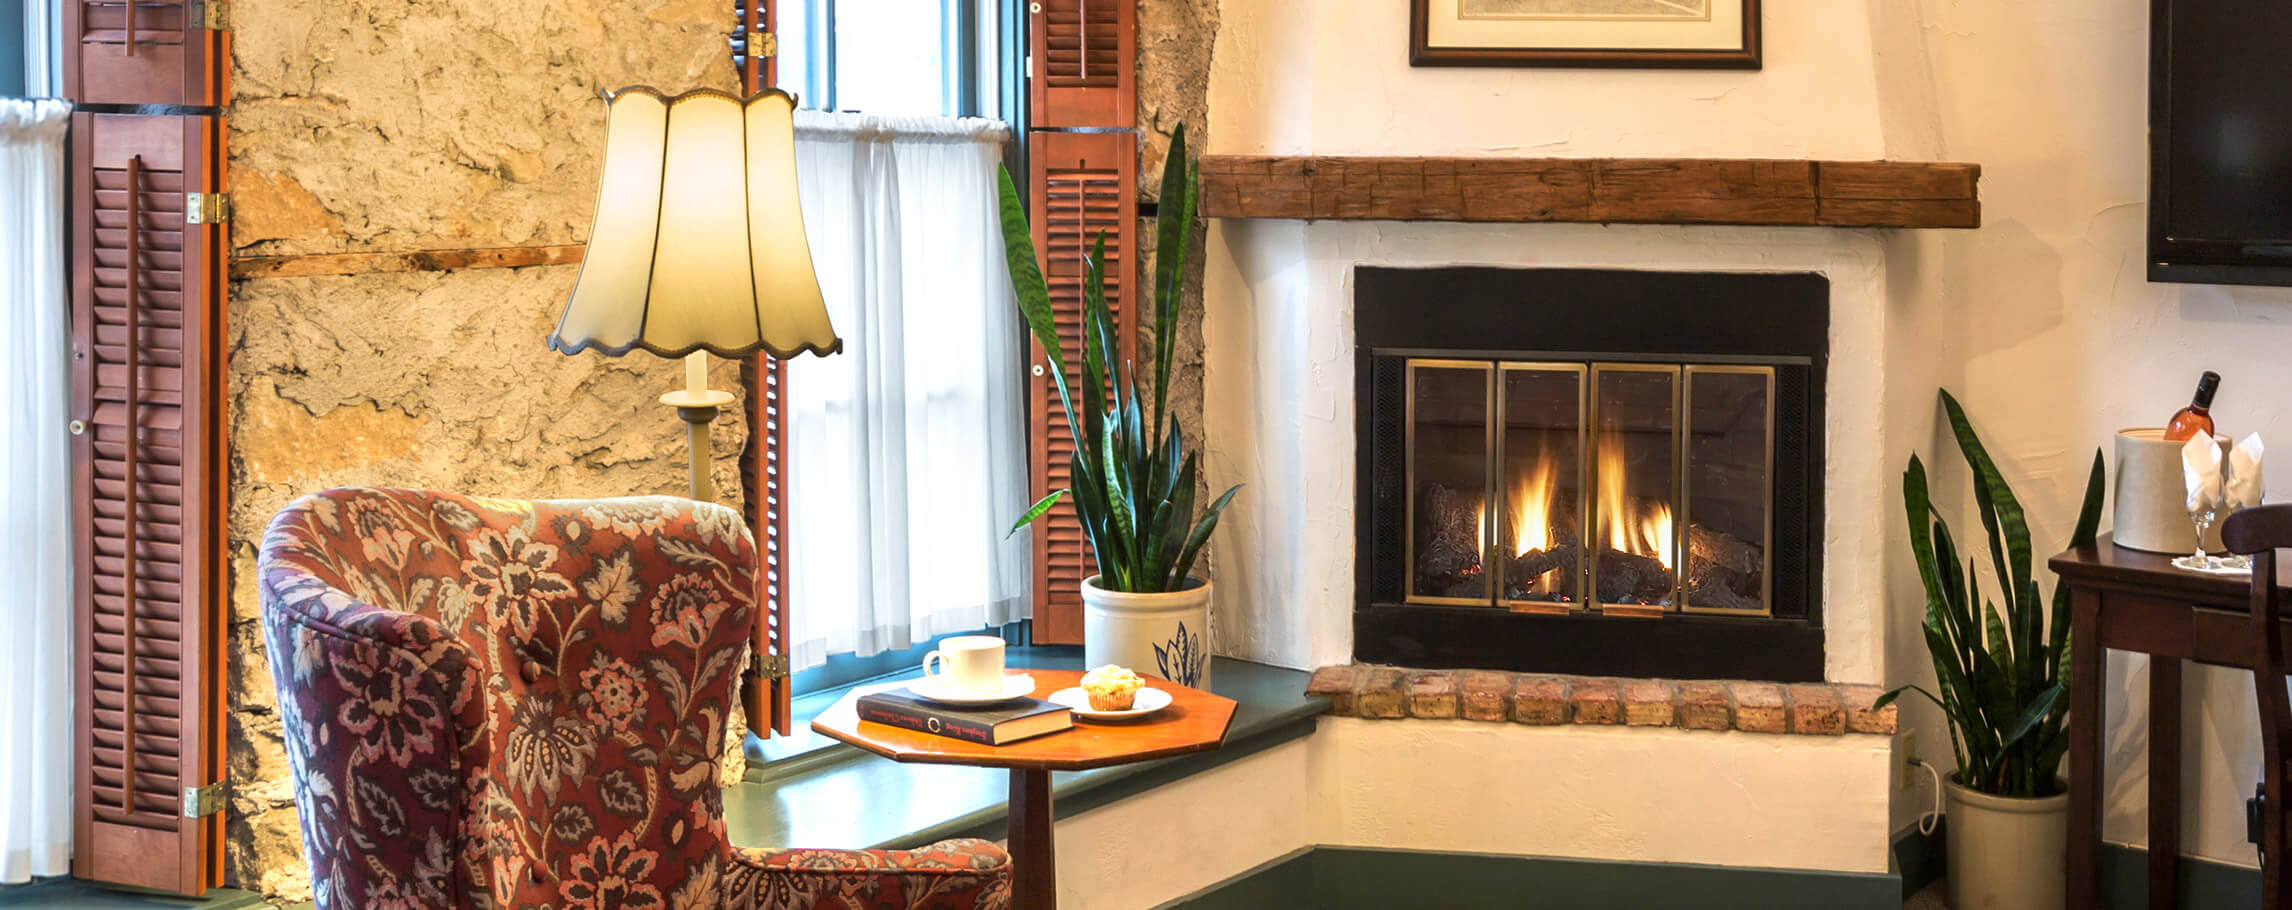 Fireplace in Room 212